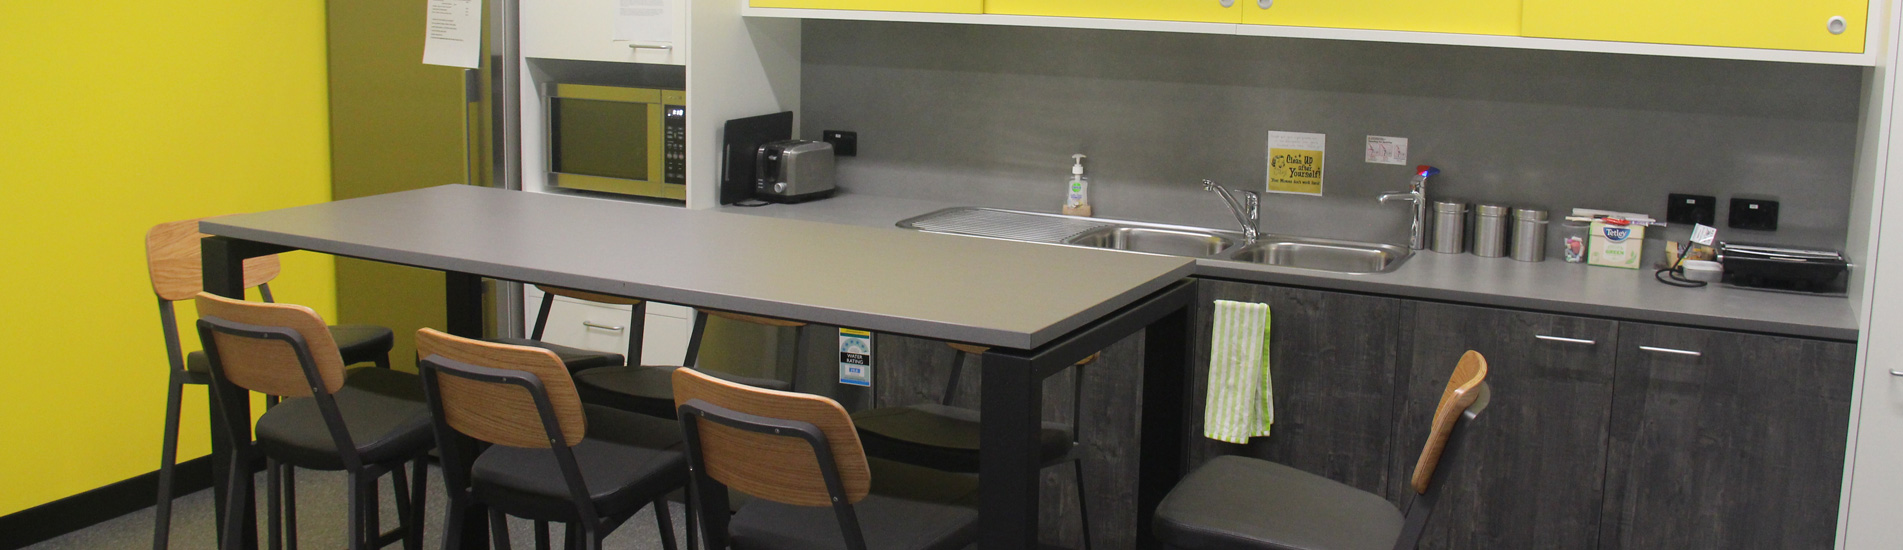 Office Furniture Caboolture Morayfield Commercial Cleaning